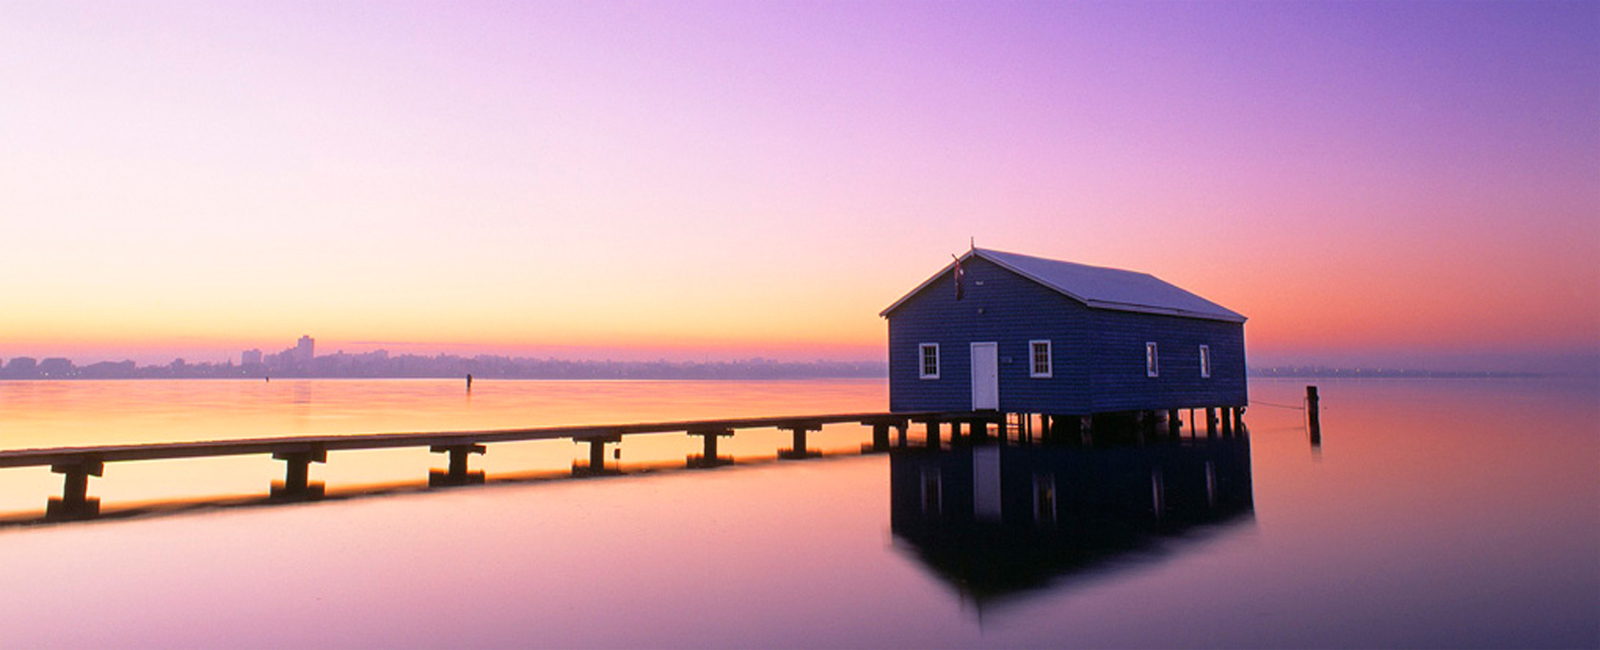 SWAN RIVER boat house